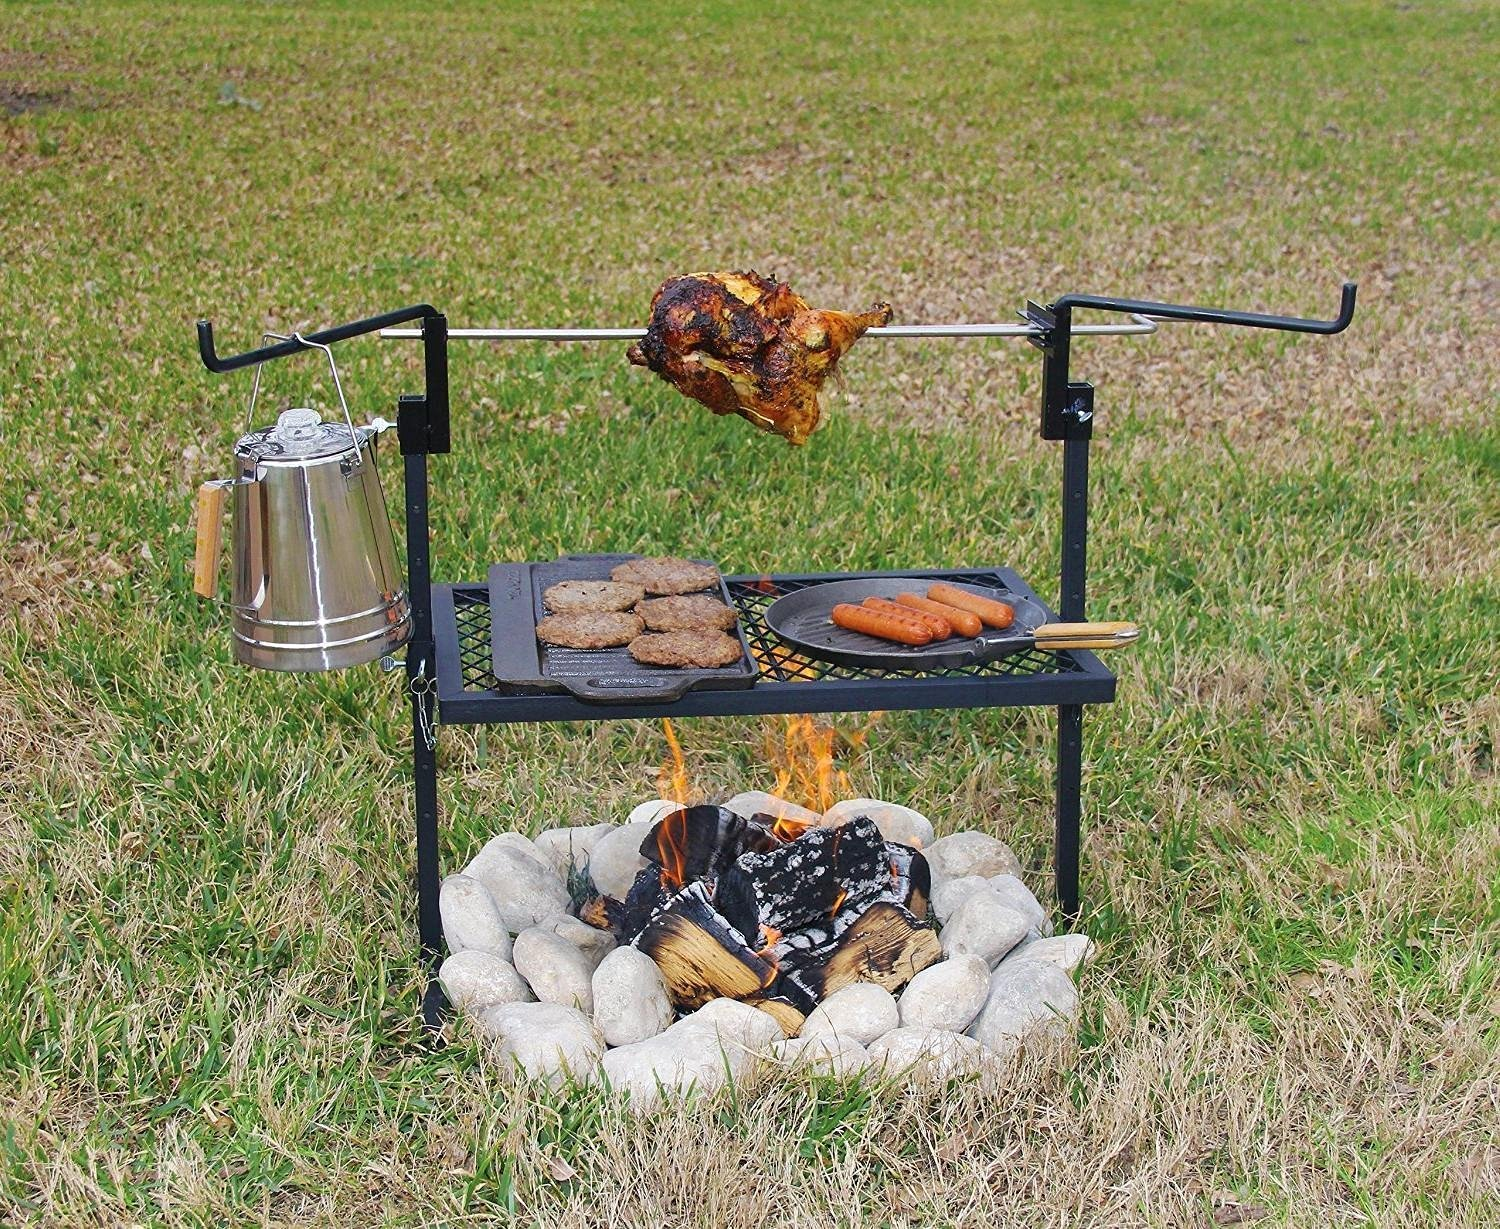 Cheap Vertical Spit Grill Find Vertical Spit Grill Deals